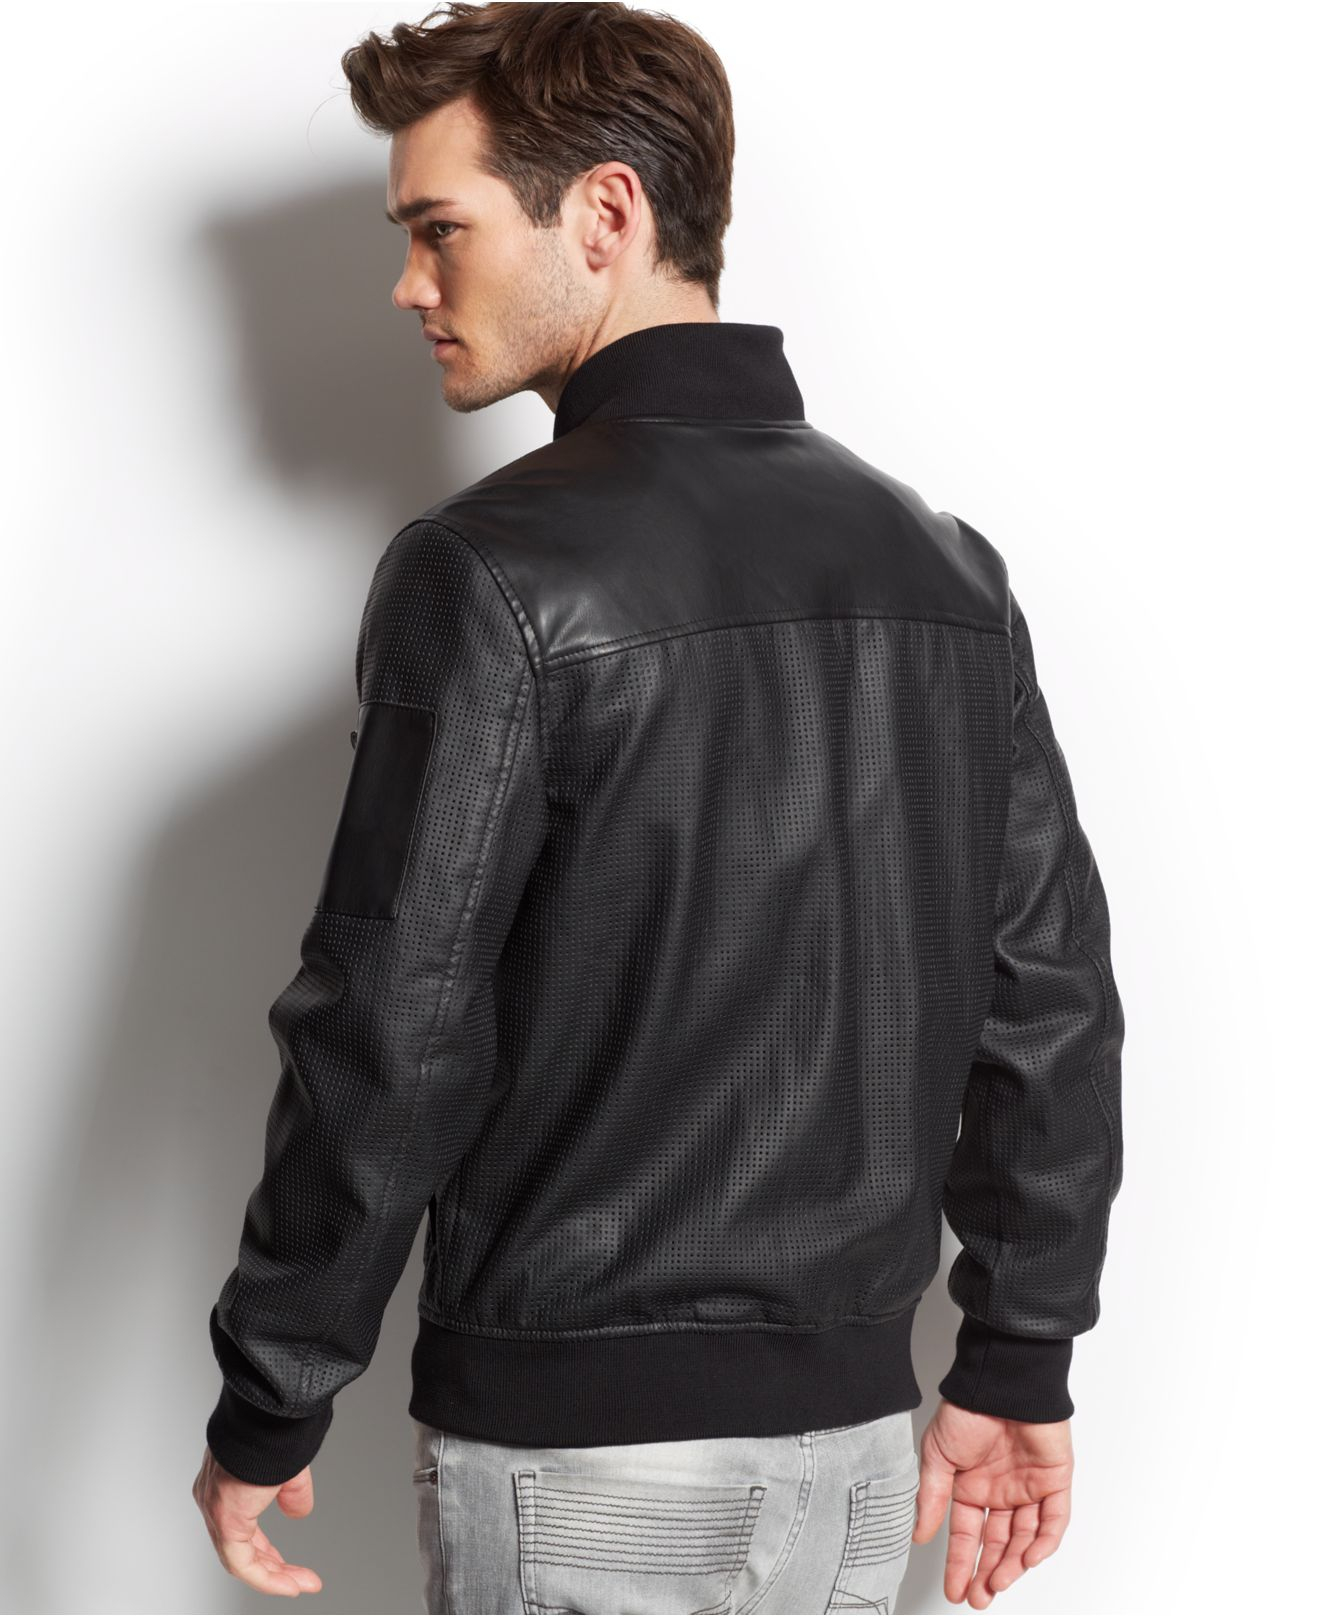 d8d1210ed Guess Perforated Faux-Leather Jacket in Black for Men - Lyst